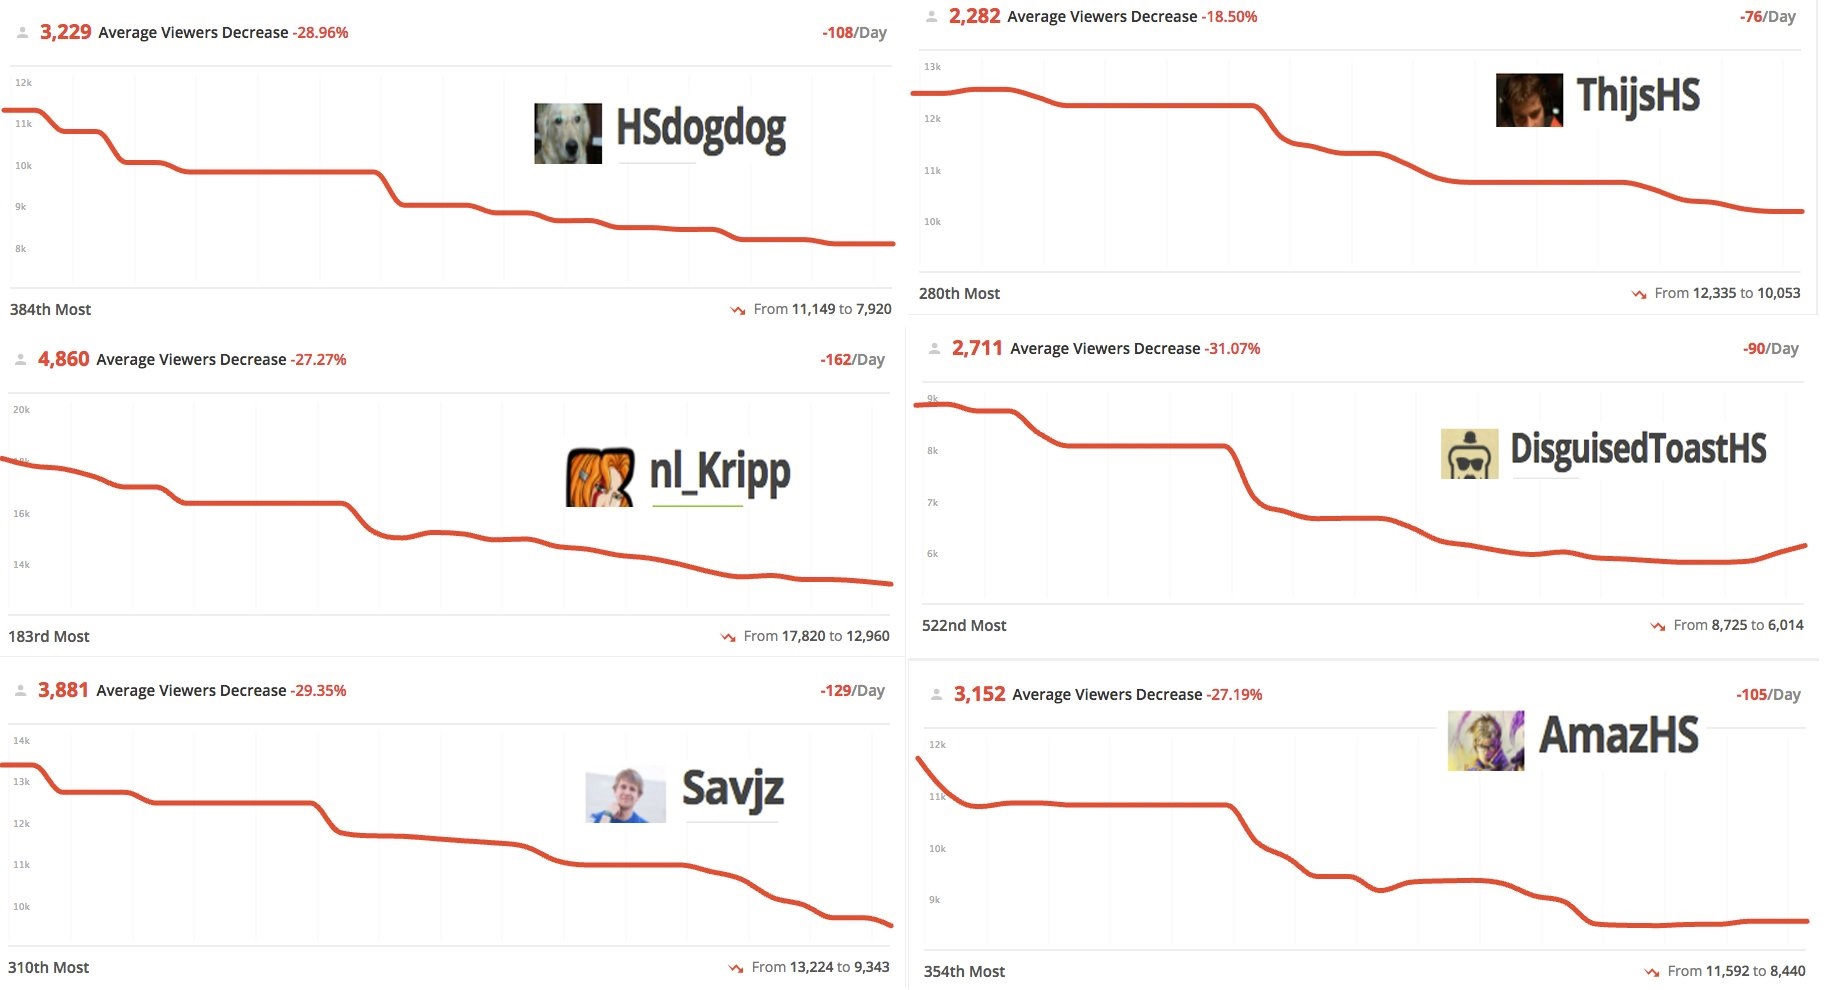 Hearthstone viewership is declining, and this graph shows just how bad the decreased Twitch viewership has gotten over the past month.